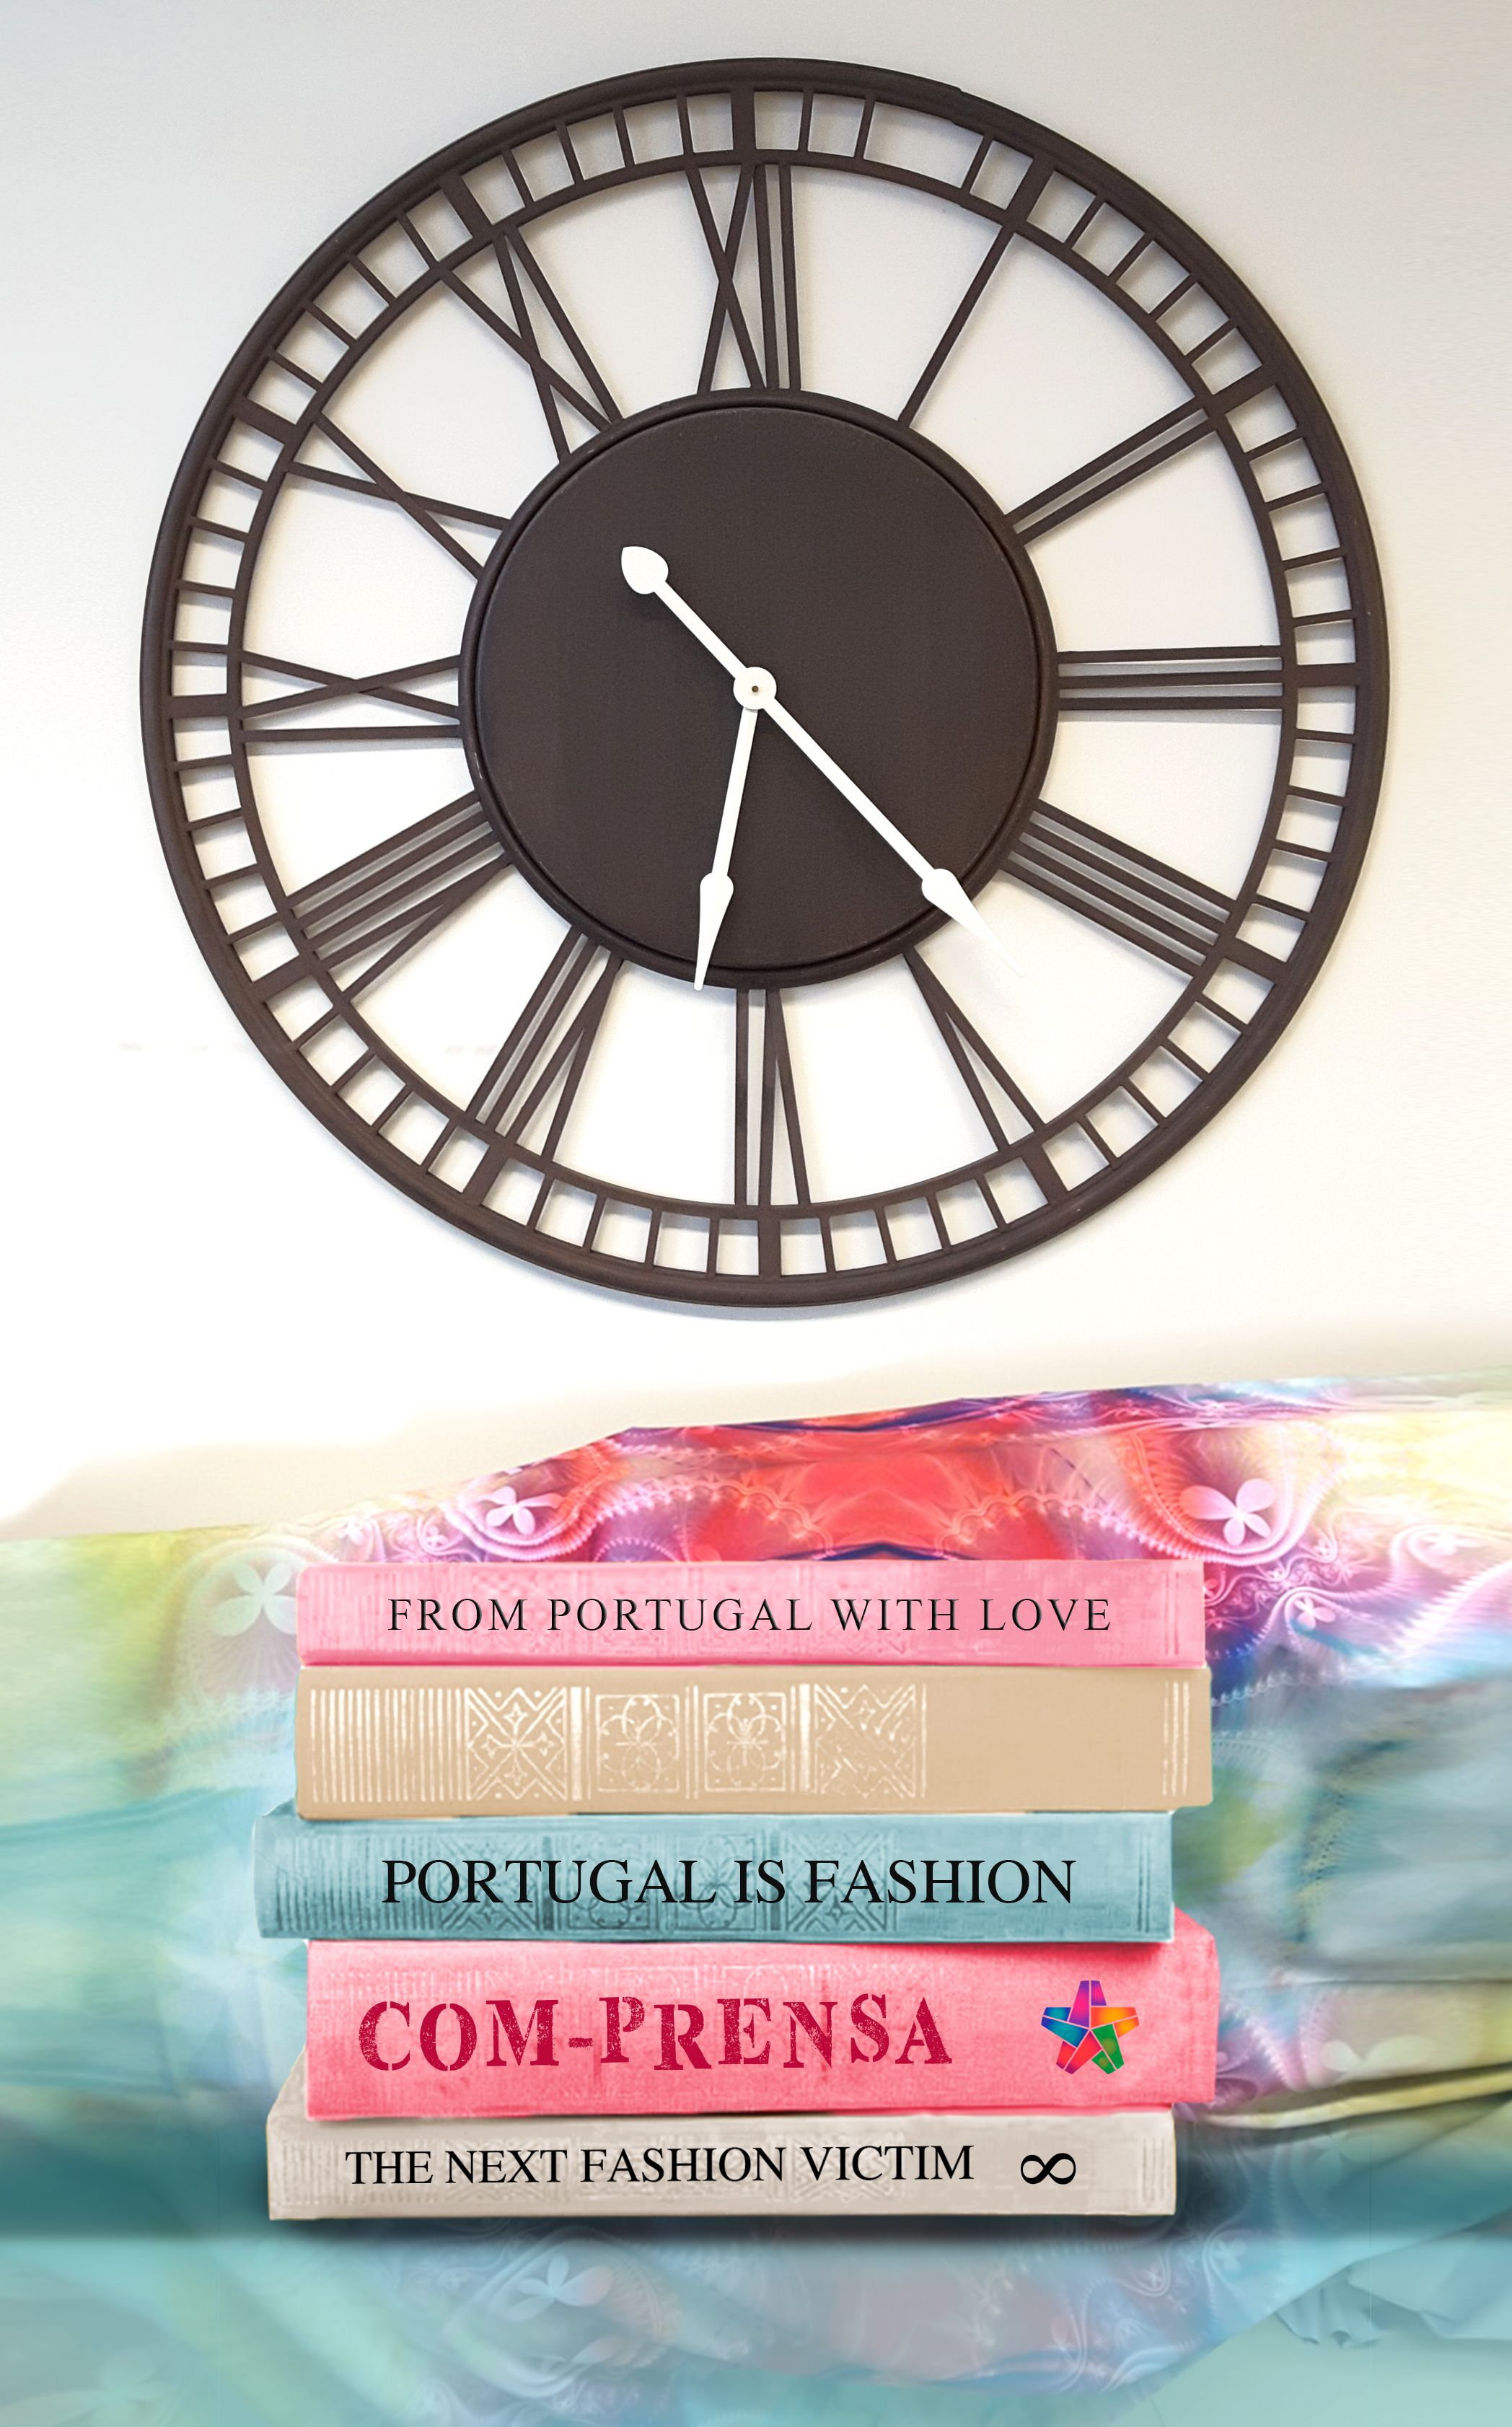 #bomdia #goodmorning #goodmorningwold #comprensa #fashion #fashionoftheday #fashionart #books #color #colorfull #textil #work #pink #green #photography #photooftheday #imageofday #fabric #showroom #watch #clock #portugal #barcelos